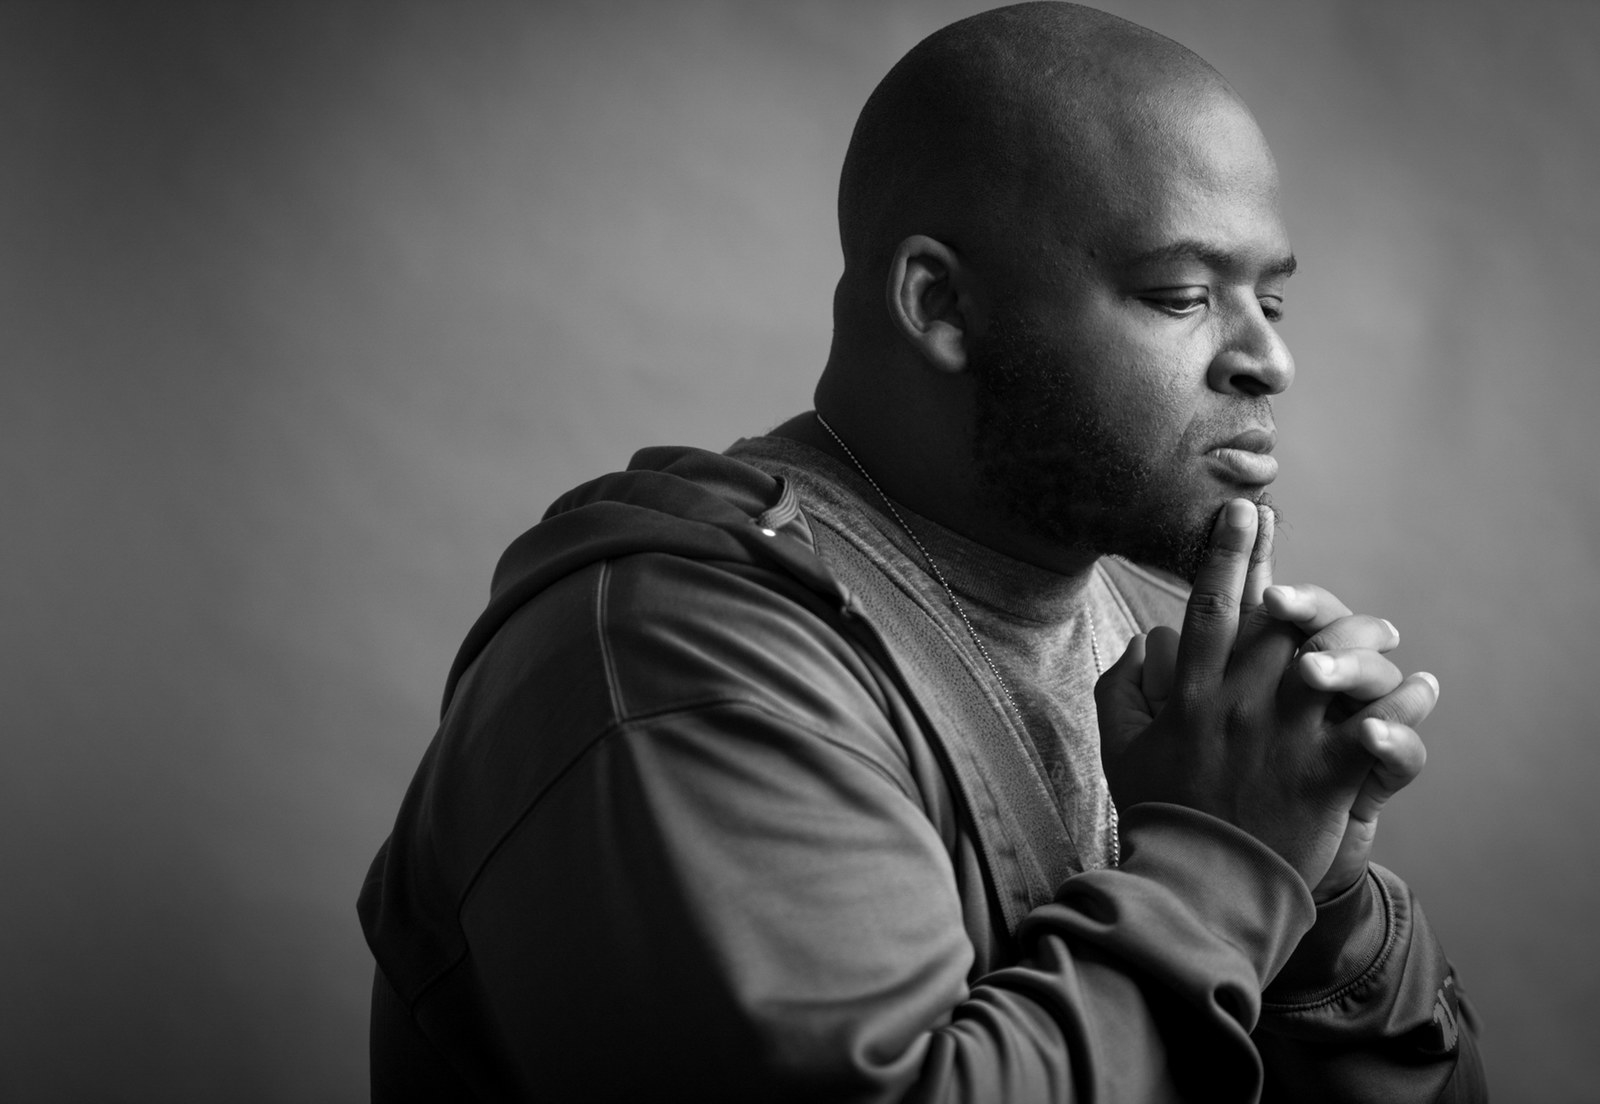 Kiese Laymon Knows His New Memoir Is Raw. But It's Not Trauma Porn.